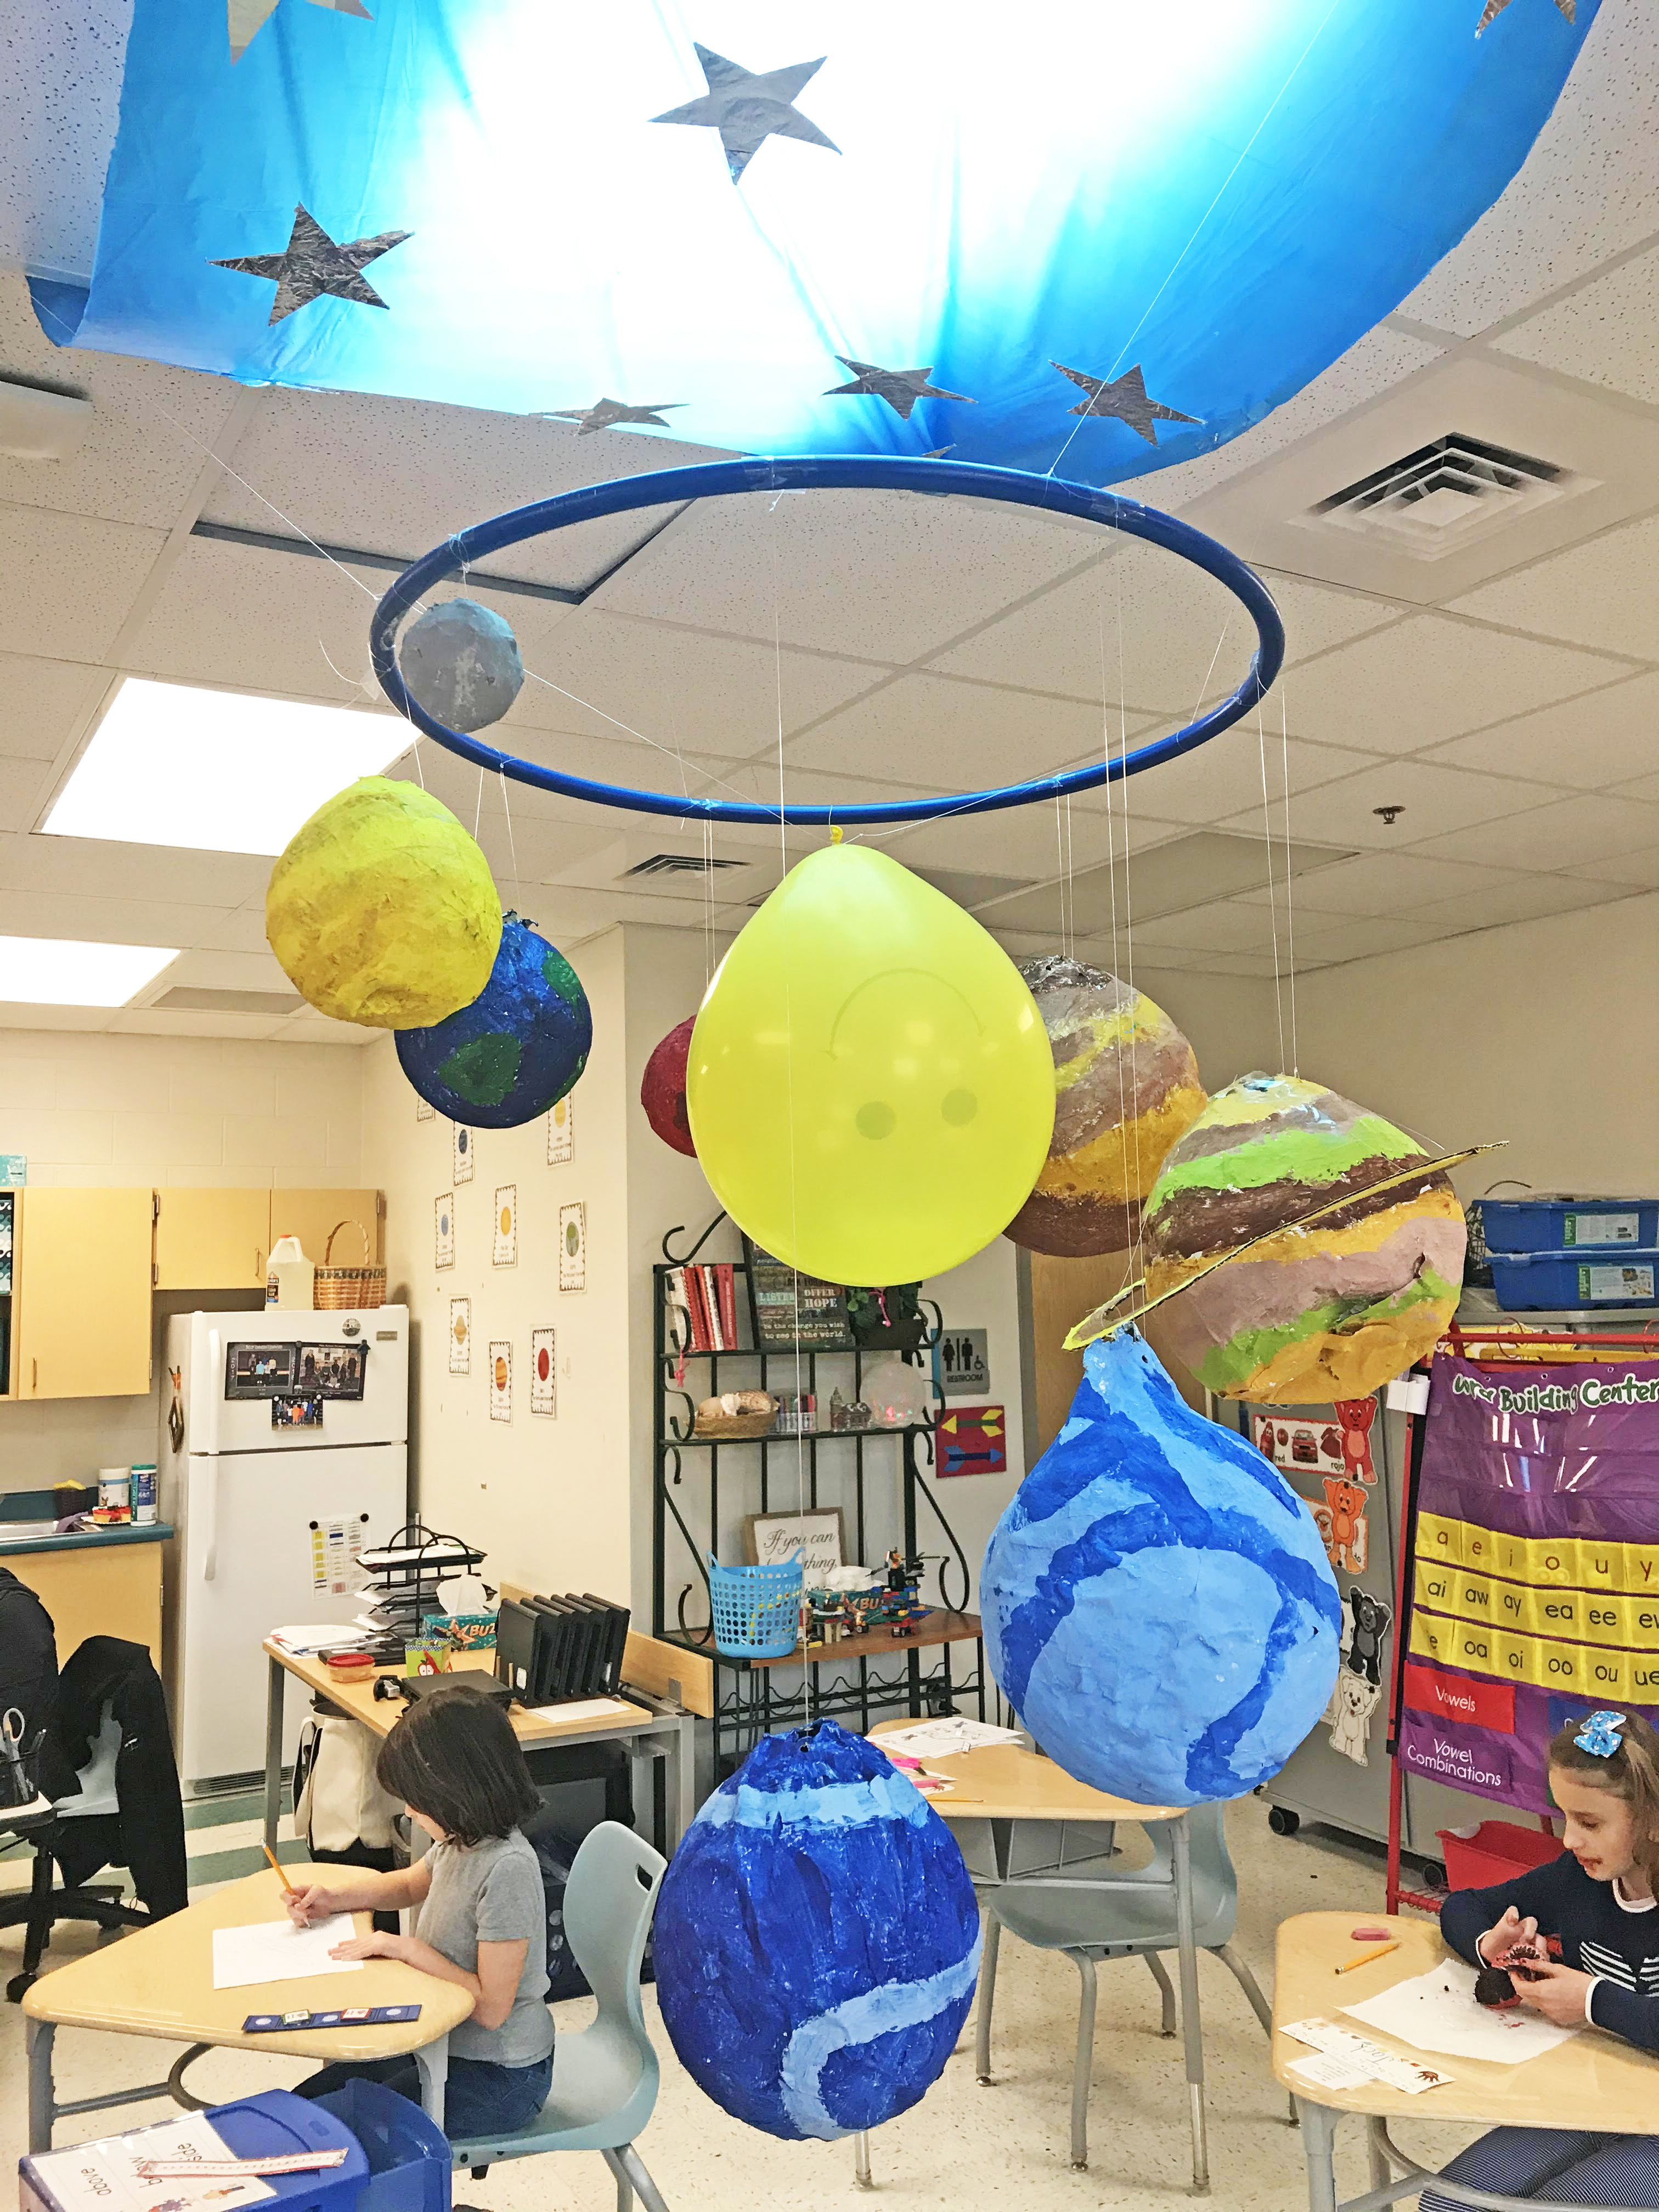 "The X-CAT class at Philip Simmons Elementary School created this model of the solar system. ""Our class has been studying the solar system this month,"" said teacher Sharon O'Keefe. ""The students created the planets using papier-mâché, and then each student was assigned a planet to paint. The students used a picture of the planet to determine what colors to paint their planet. They are very proud to have their class solar system hanging from our ceiling, to show all that come through our room."" The X-CAT class, also taught by Renee Jensen, is made up of students in grades K-4."